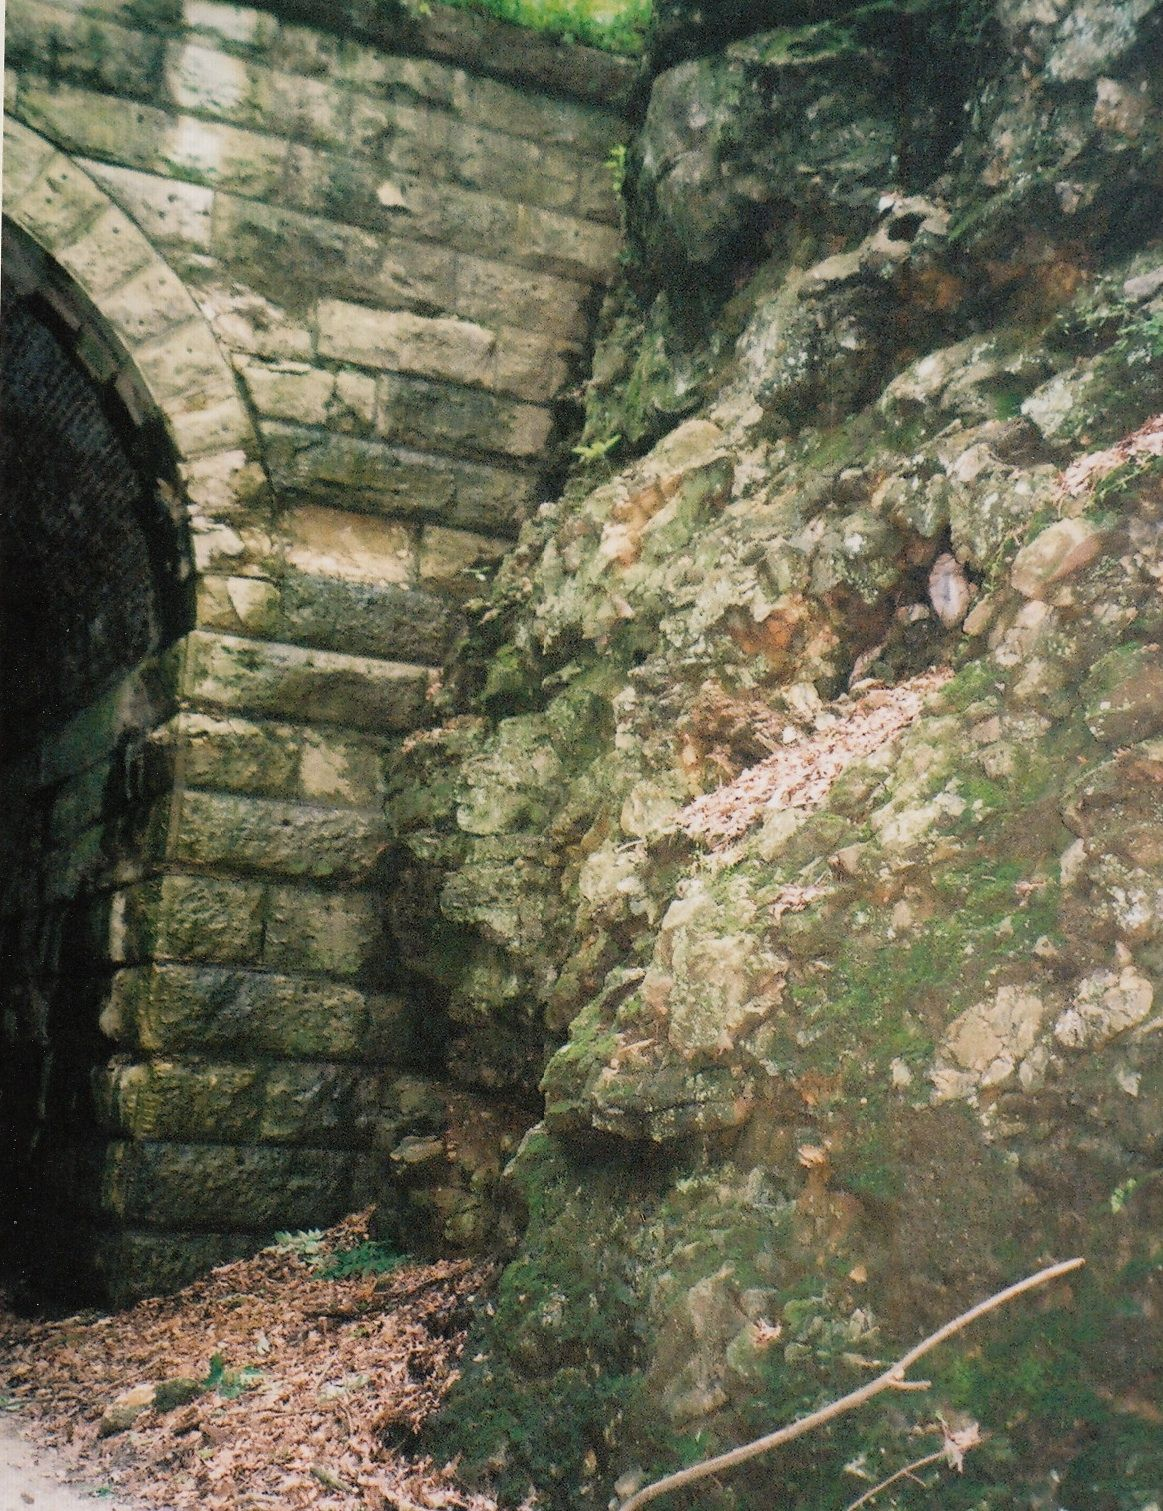 Tunnel Irish miners cut.  Along the trail from here to St. Louis.